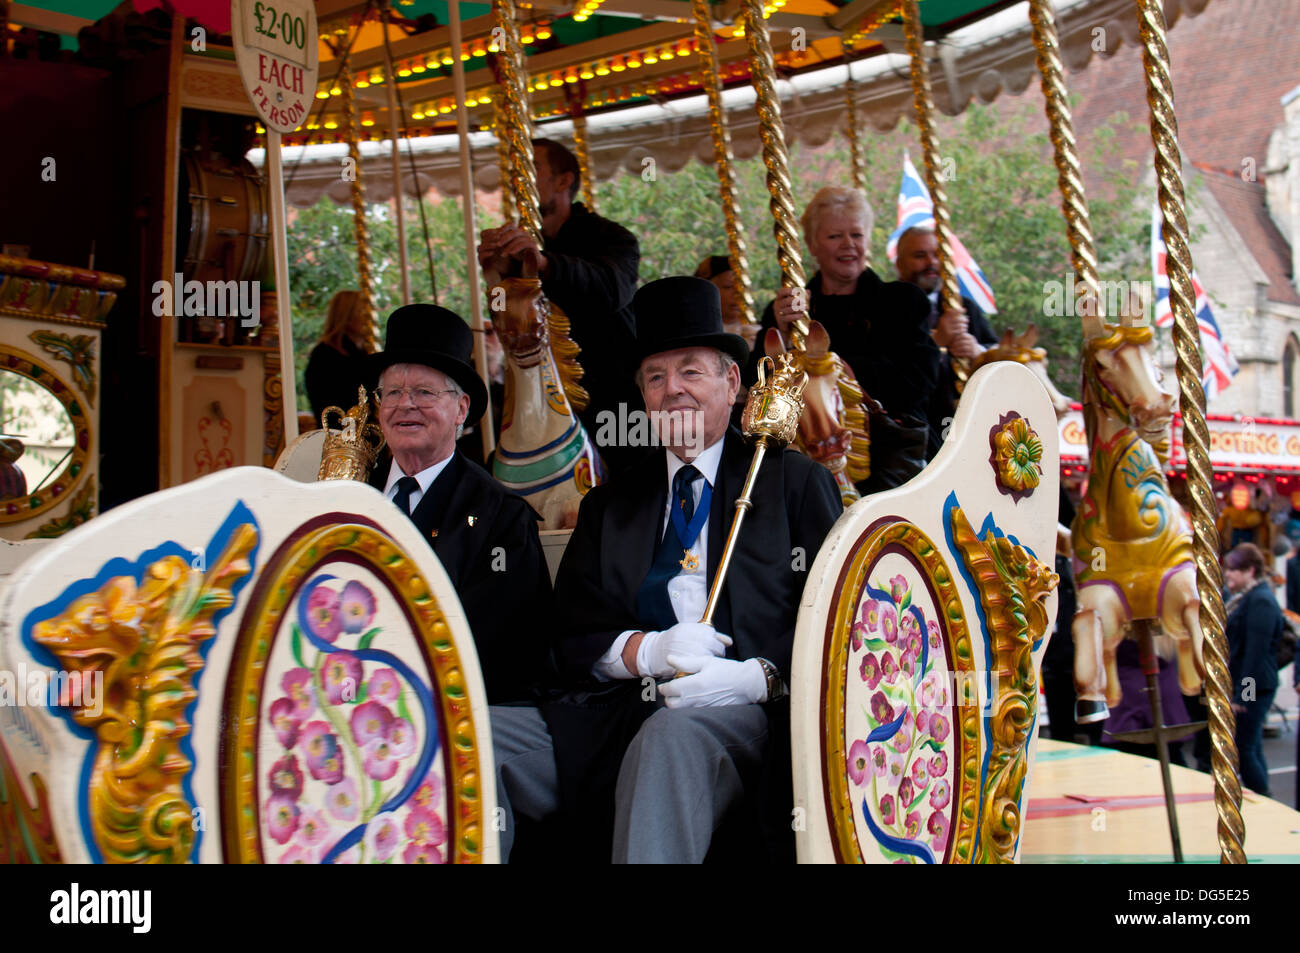 The Mace Bearers of Stratford-upon-Avon at the official opening of the 2013 mop fair, Warwickshire, UK - Stock Image